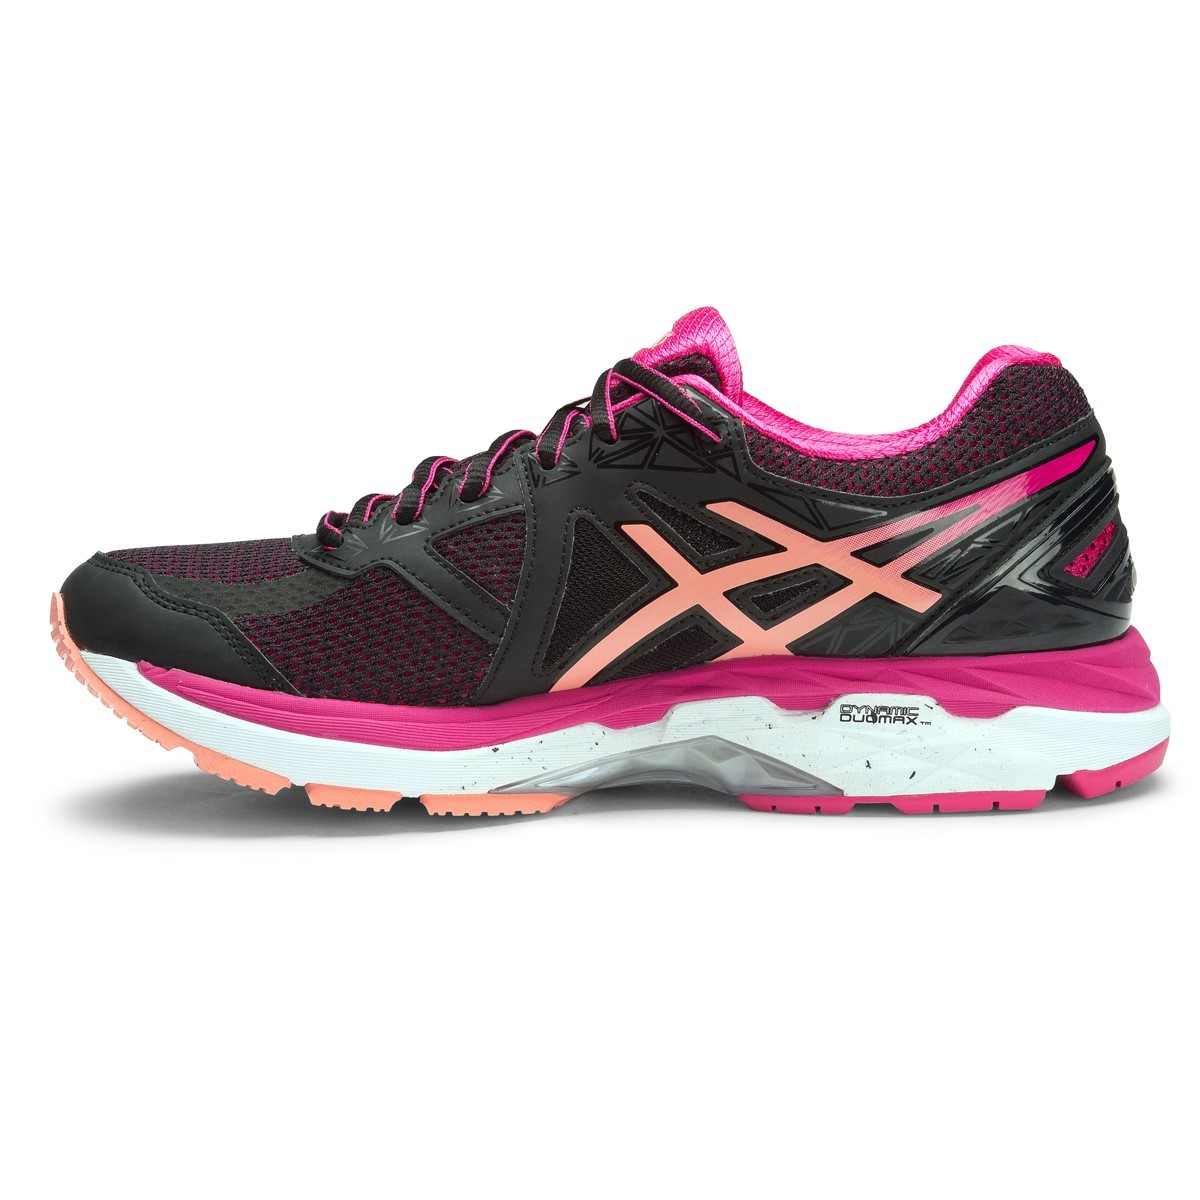 asics gt 2000 4 d womens running shoes black peach melba pink online sportitude. Black Bedroom Furniture Sets. Home Design Ideas